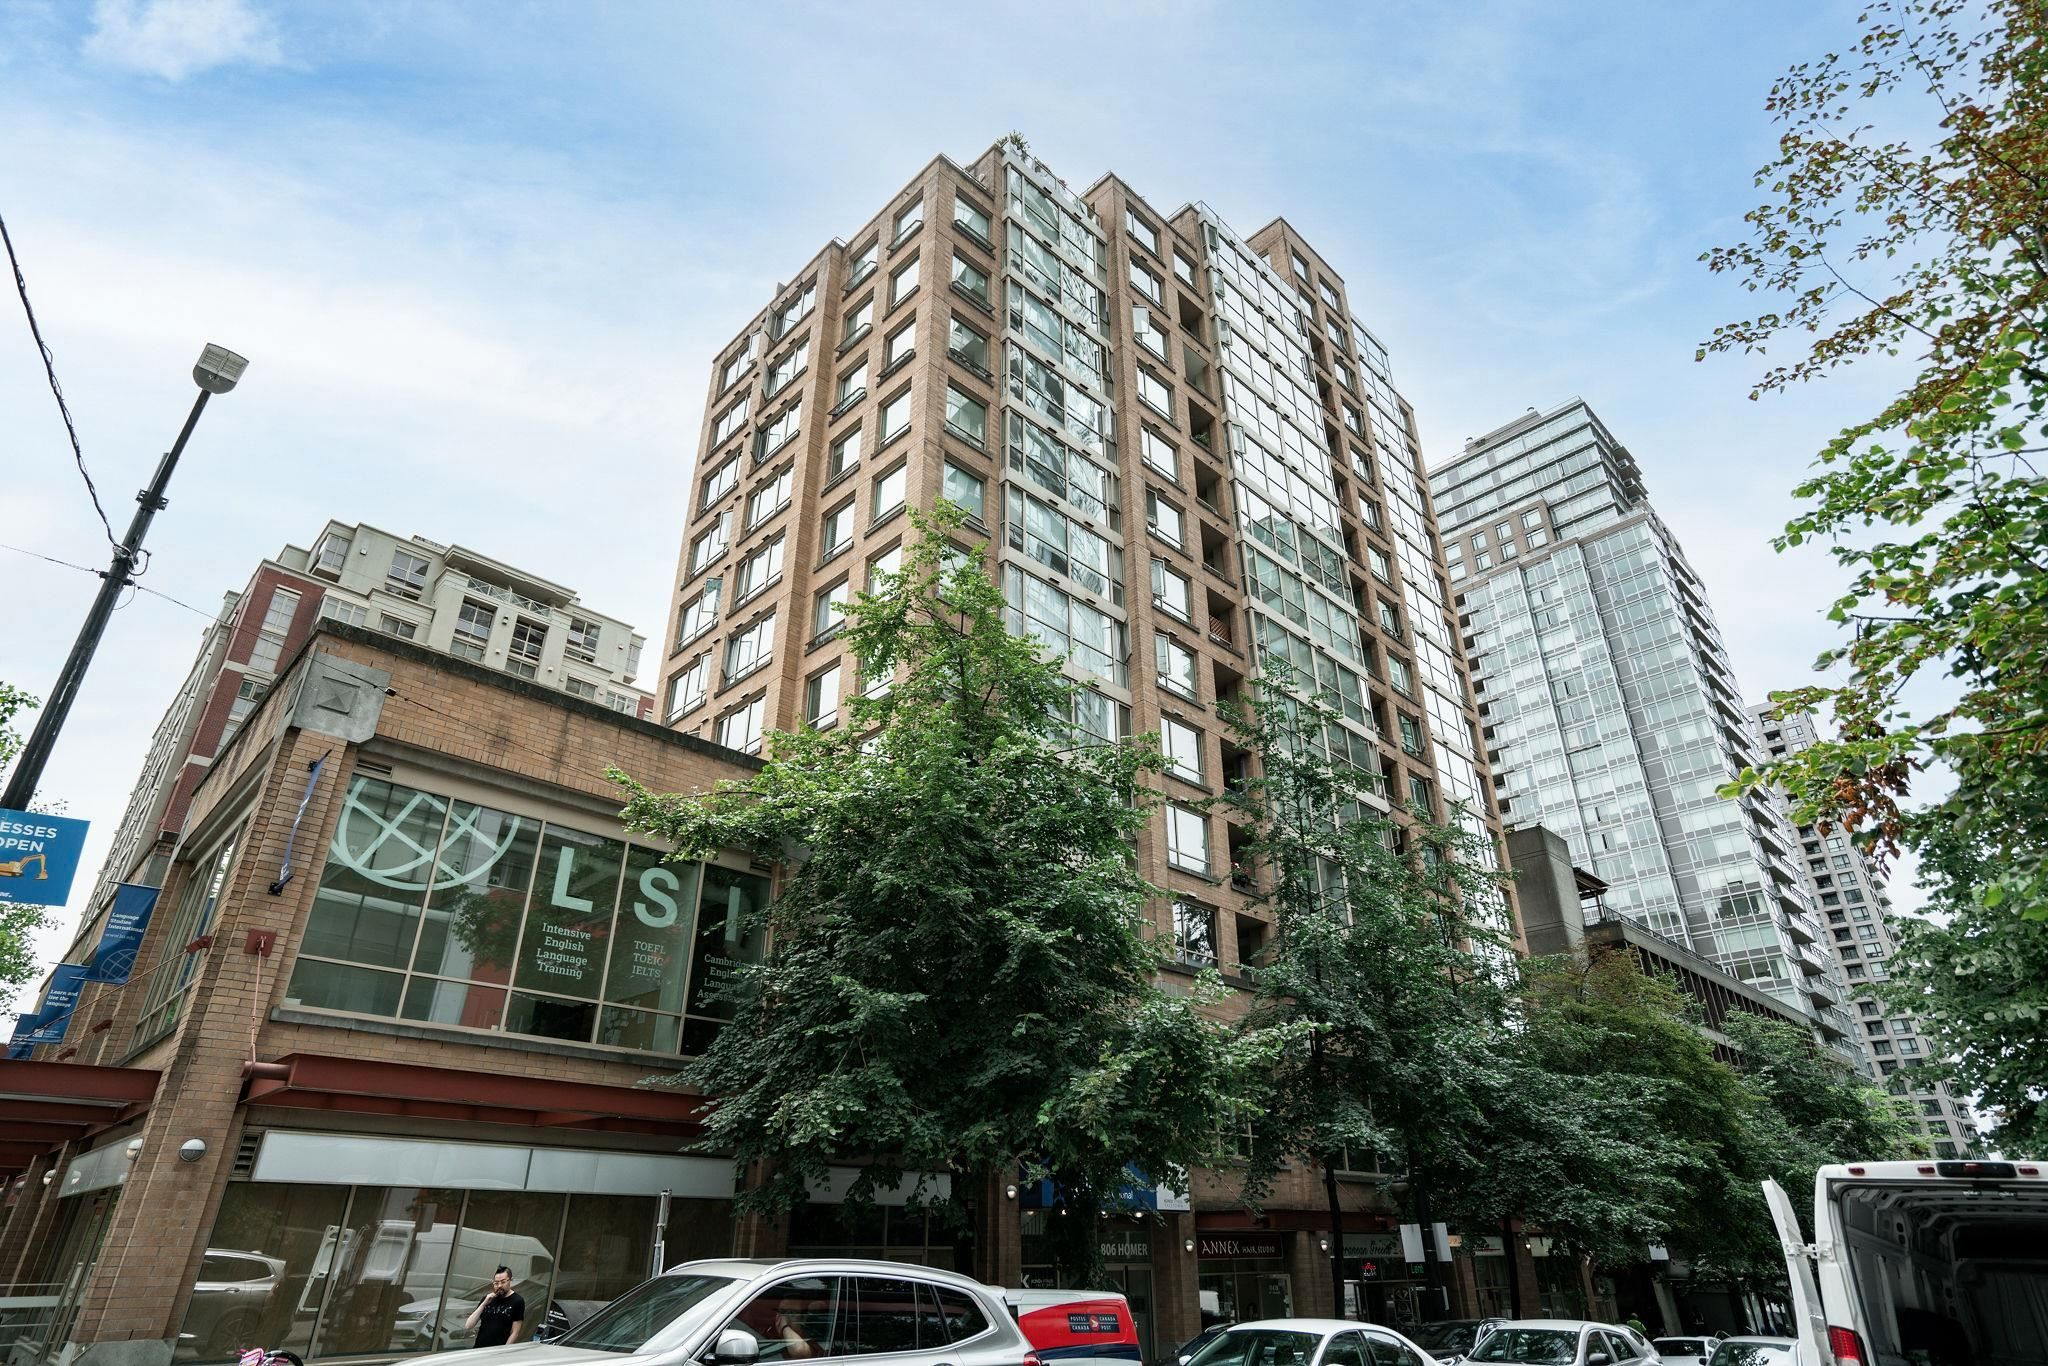 """Main Photo: 1207 822 HOMER Street in Vancouver: Downtown VW Condo for sale in """"The Galileo"""" (Vancouver West)  : MLS®# R2612307"""